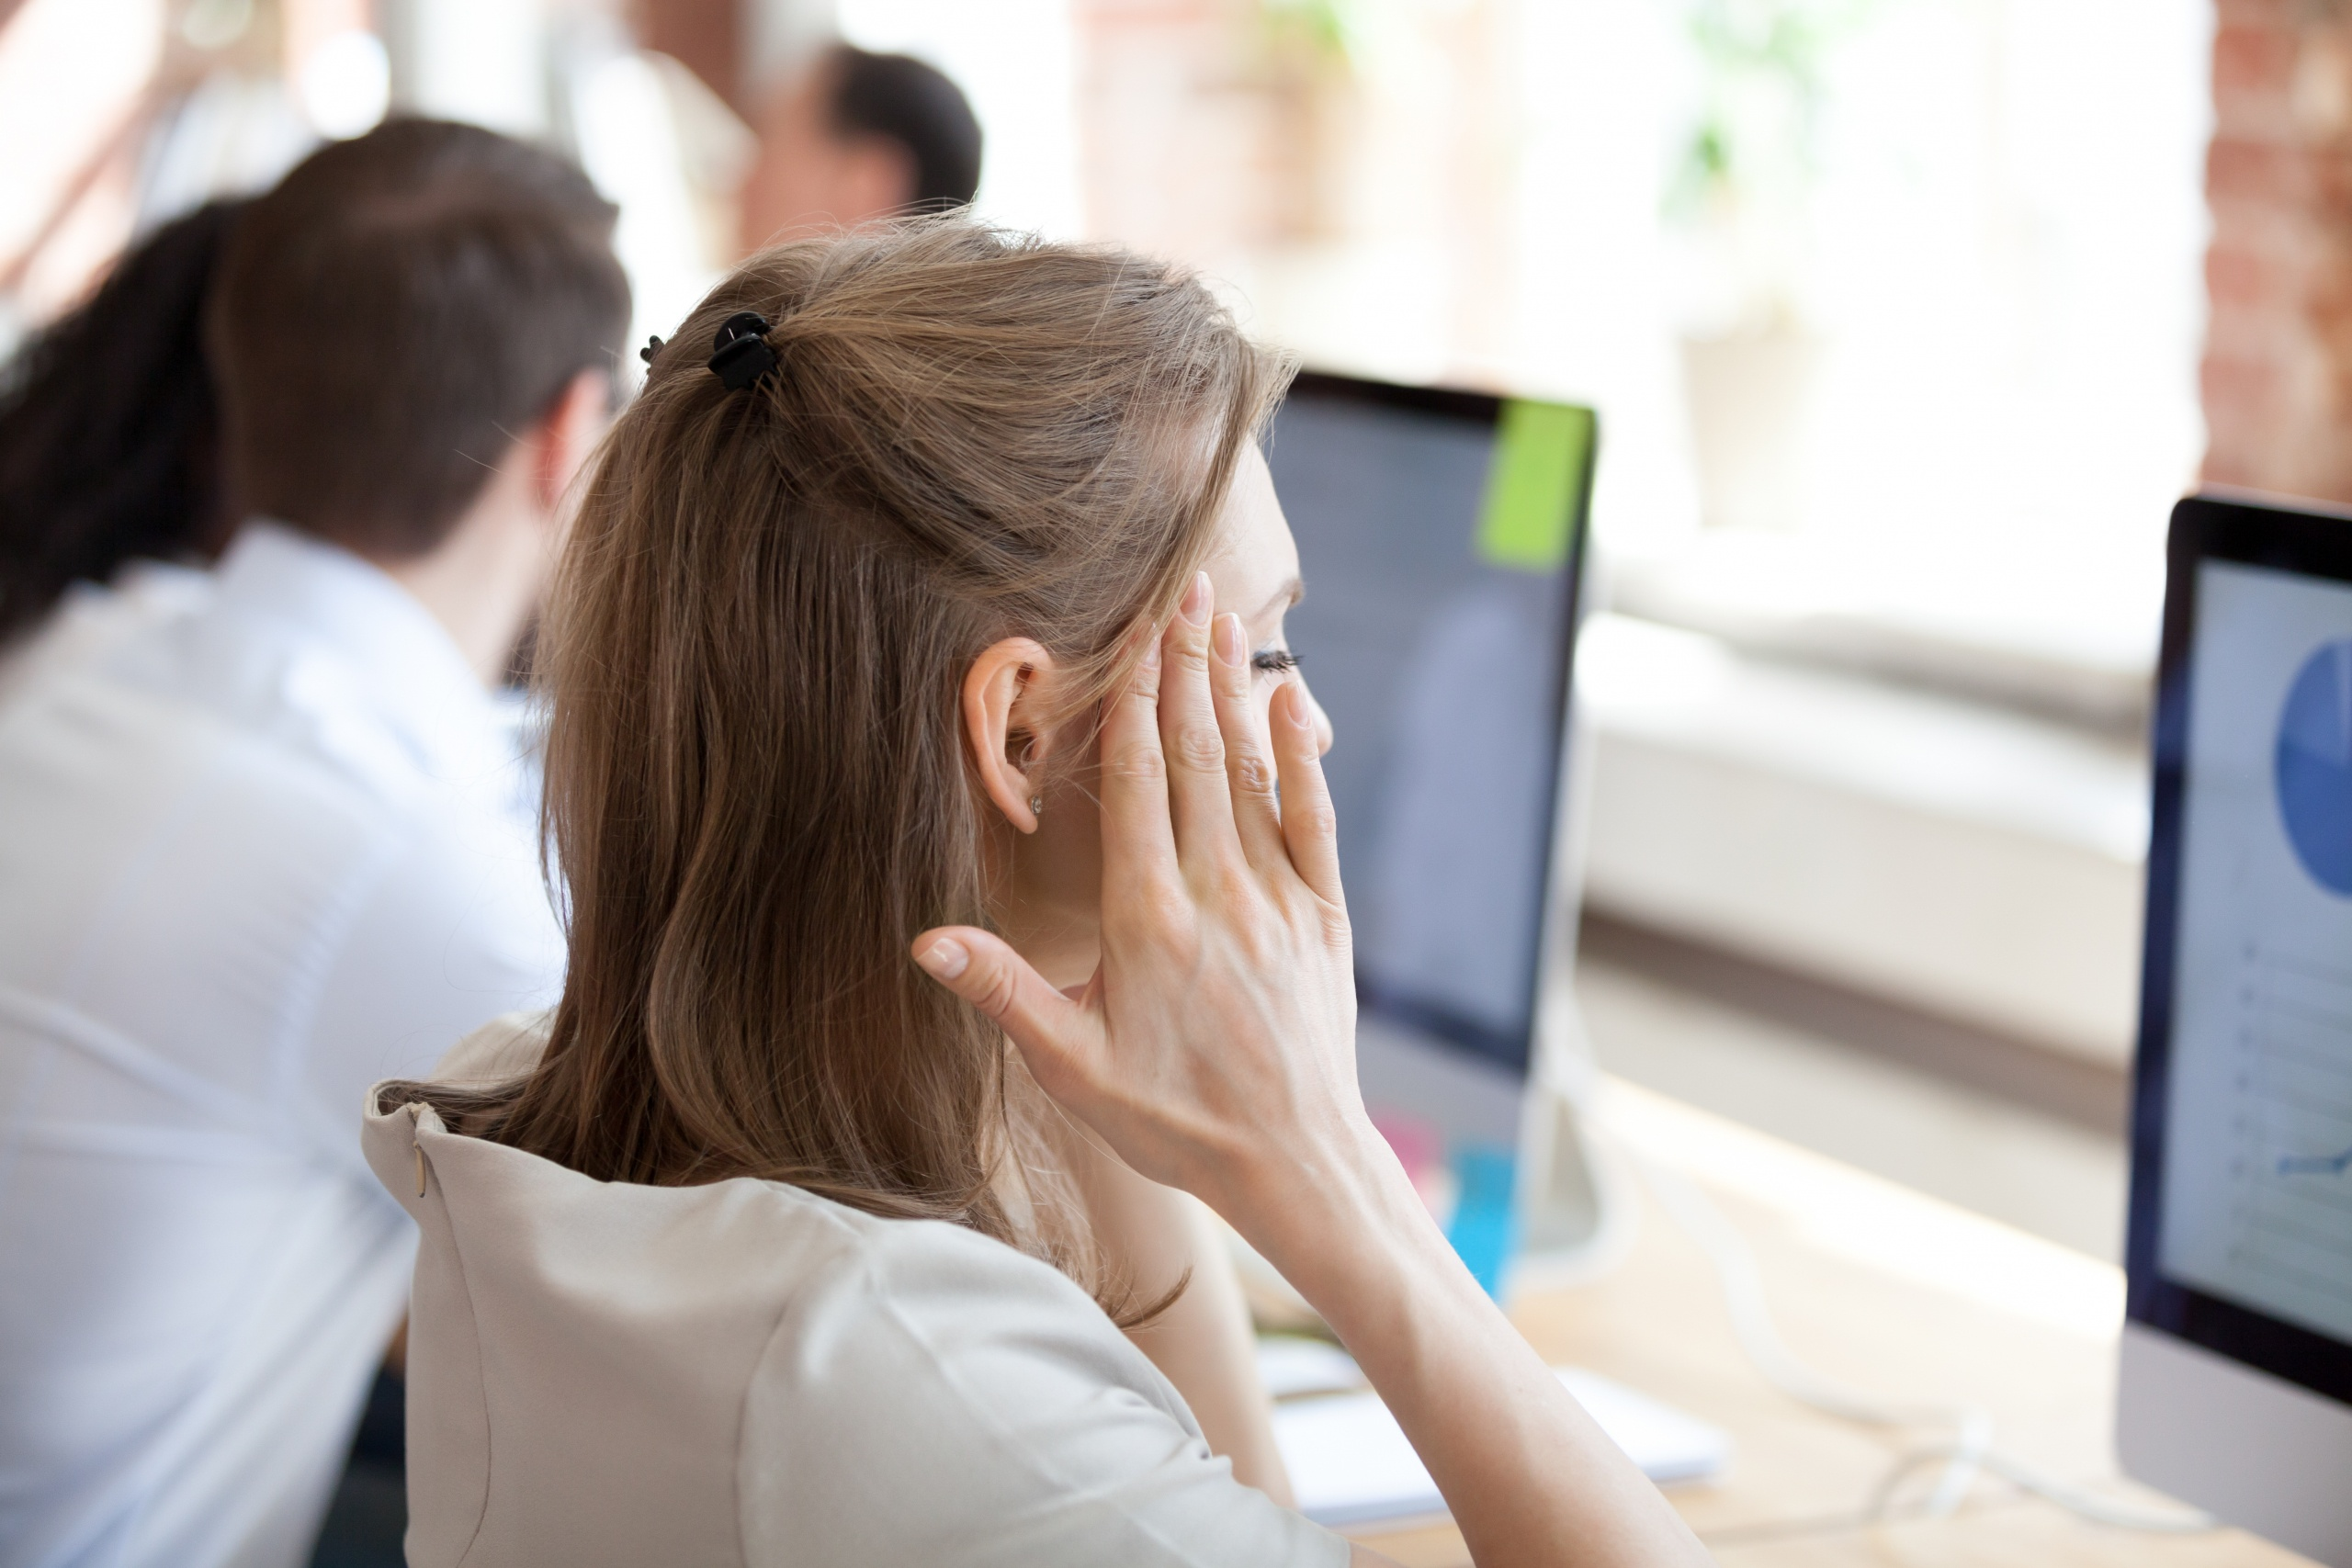 Stressed female employee massaging temples suffering from headache working too long at computer